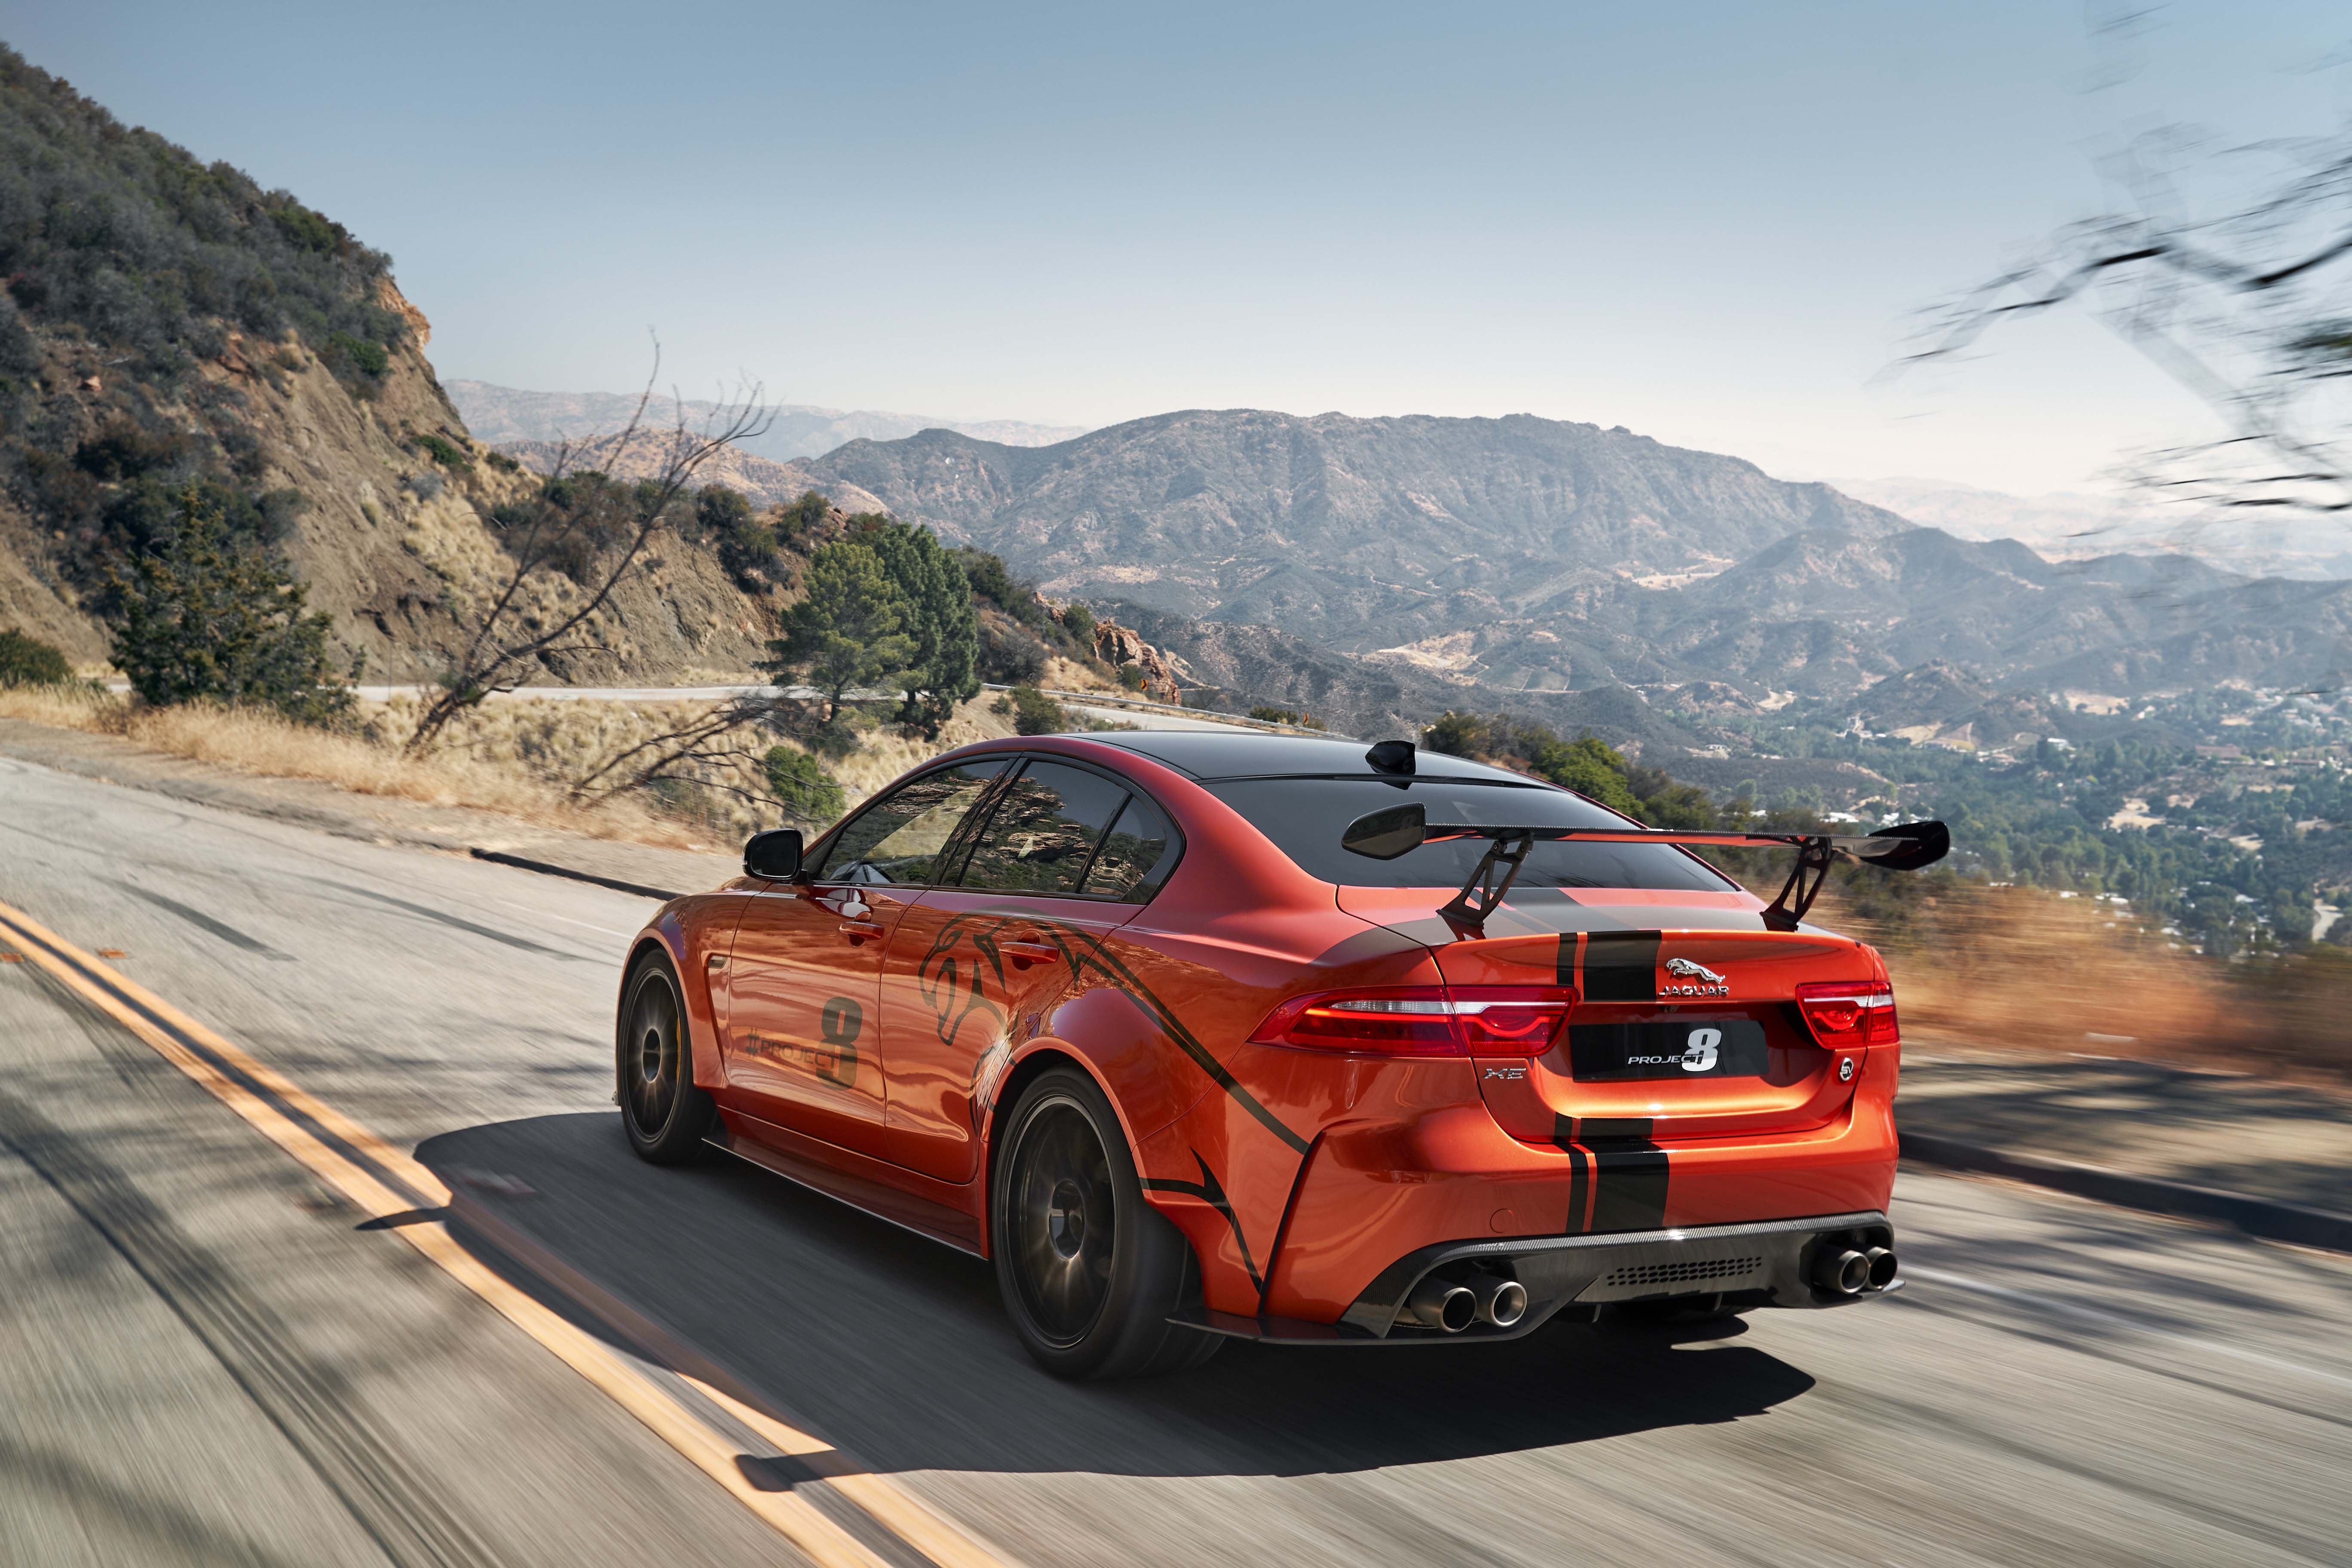 Jaguar xe sv project 8 a star is born automotive rhythms commencing with a lightweight compact and rigid aluminum body structure svo commissioned the jaguar with flared bodywork 20 forged aluminum alloy wheels malvernweather Gallery